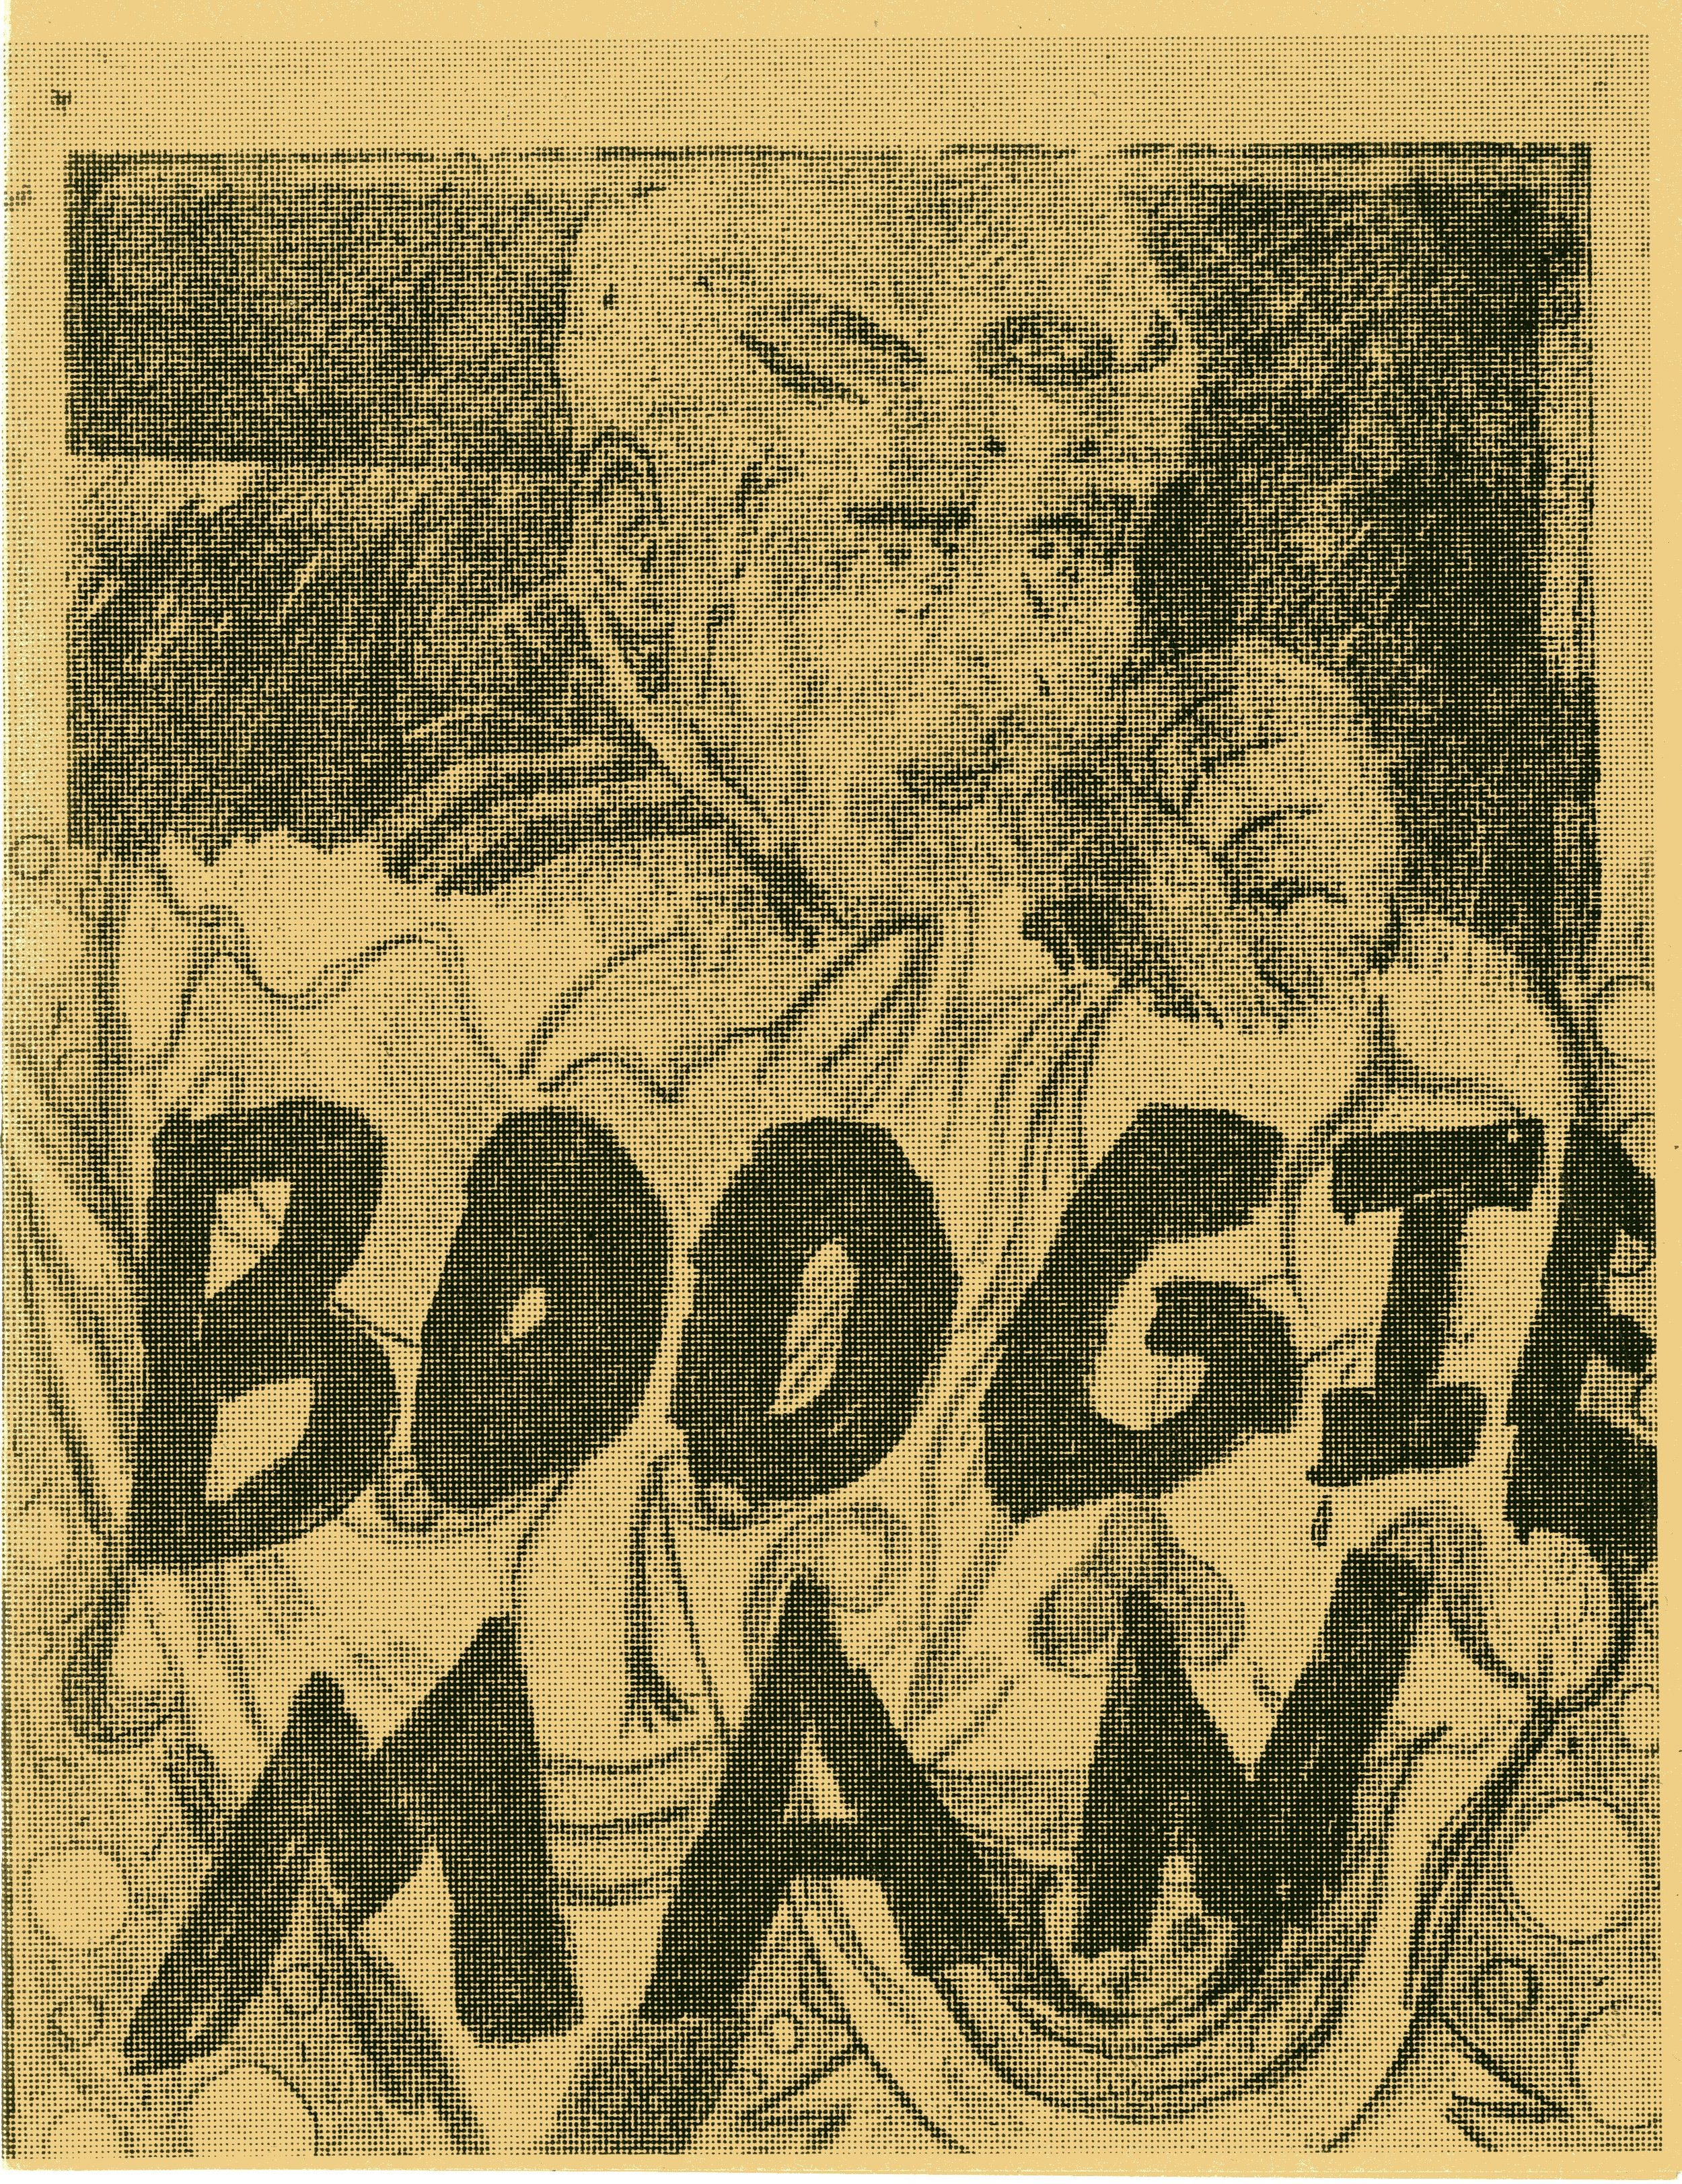 Boogie Man.. Thems Is Fightin Words